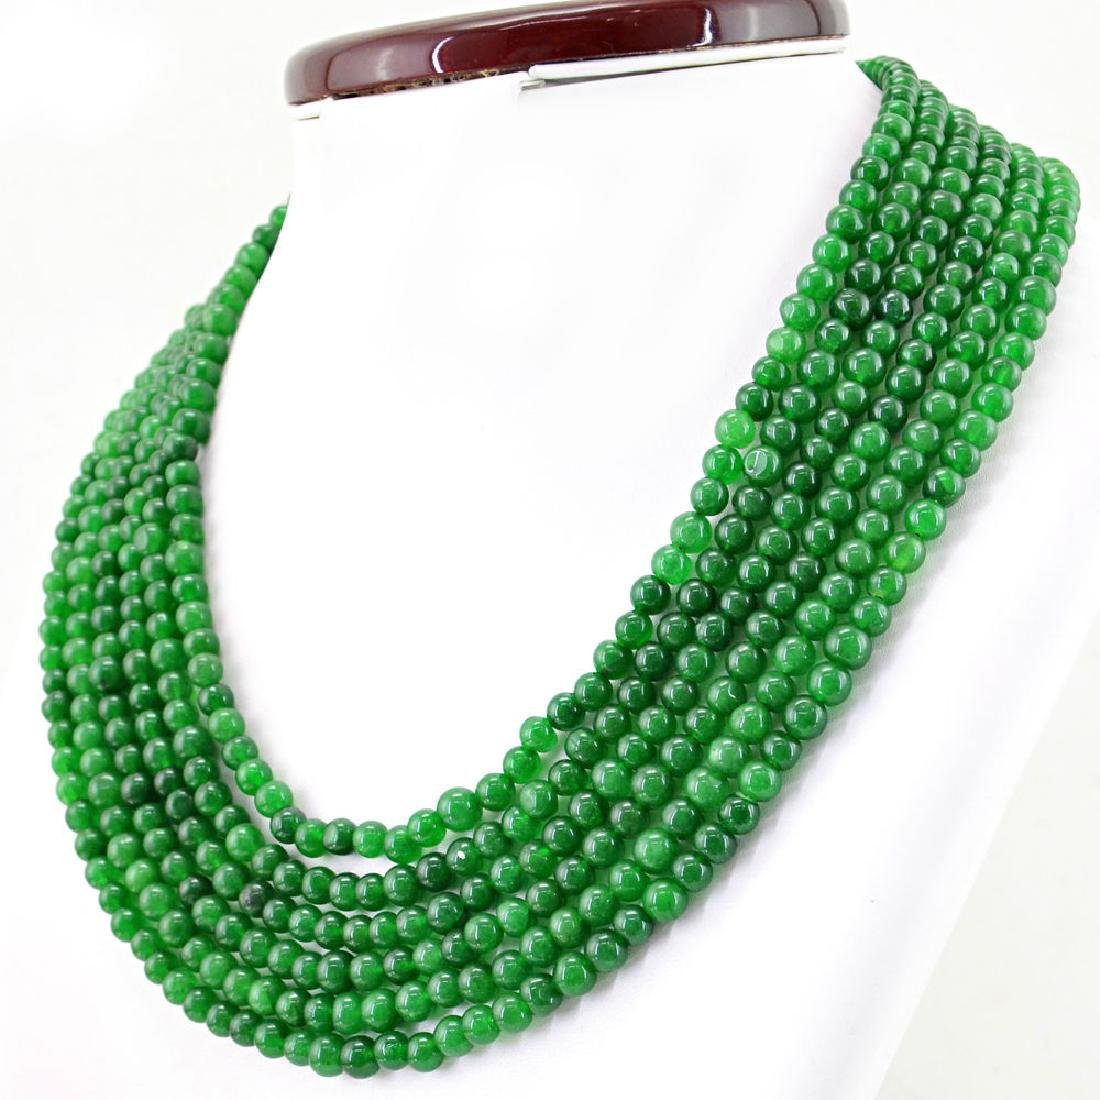 EARTH MINED 6 STRAND ROUND SHAPE RICH GREEN EMERALD